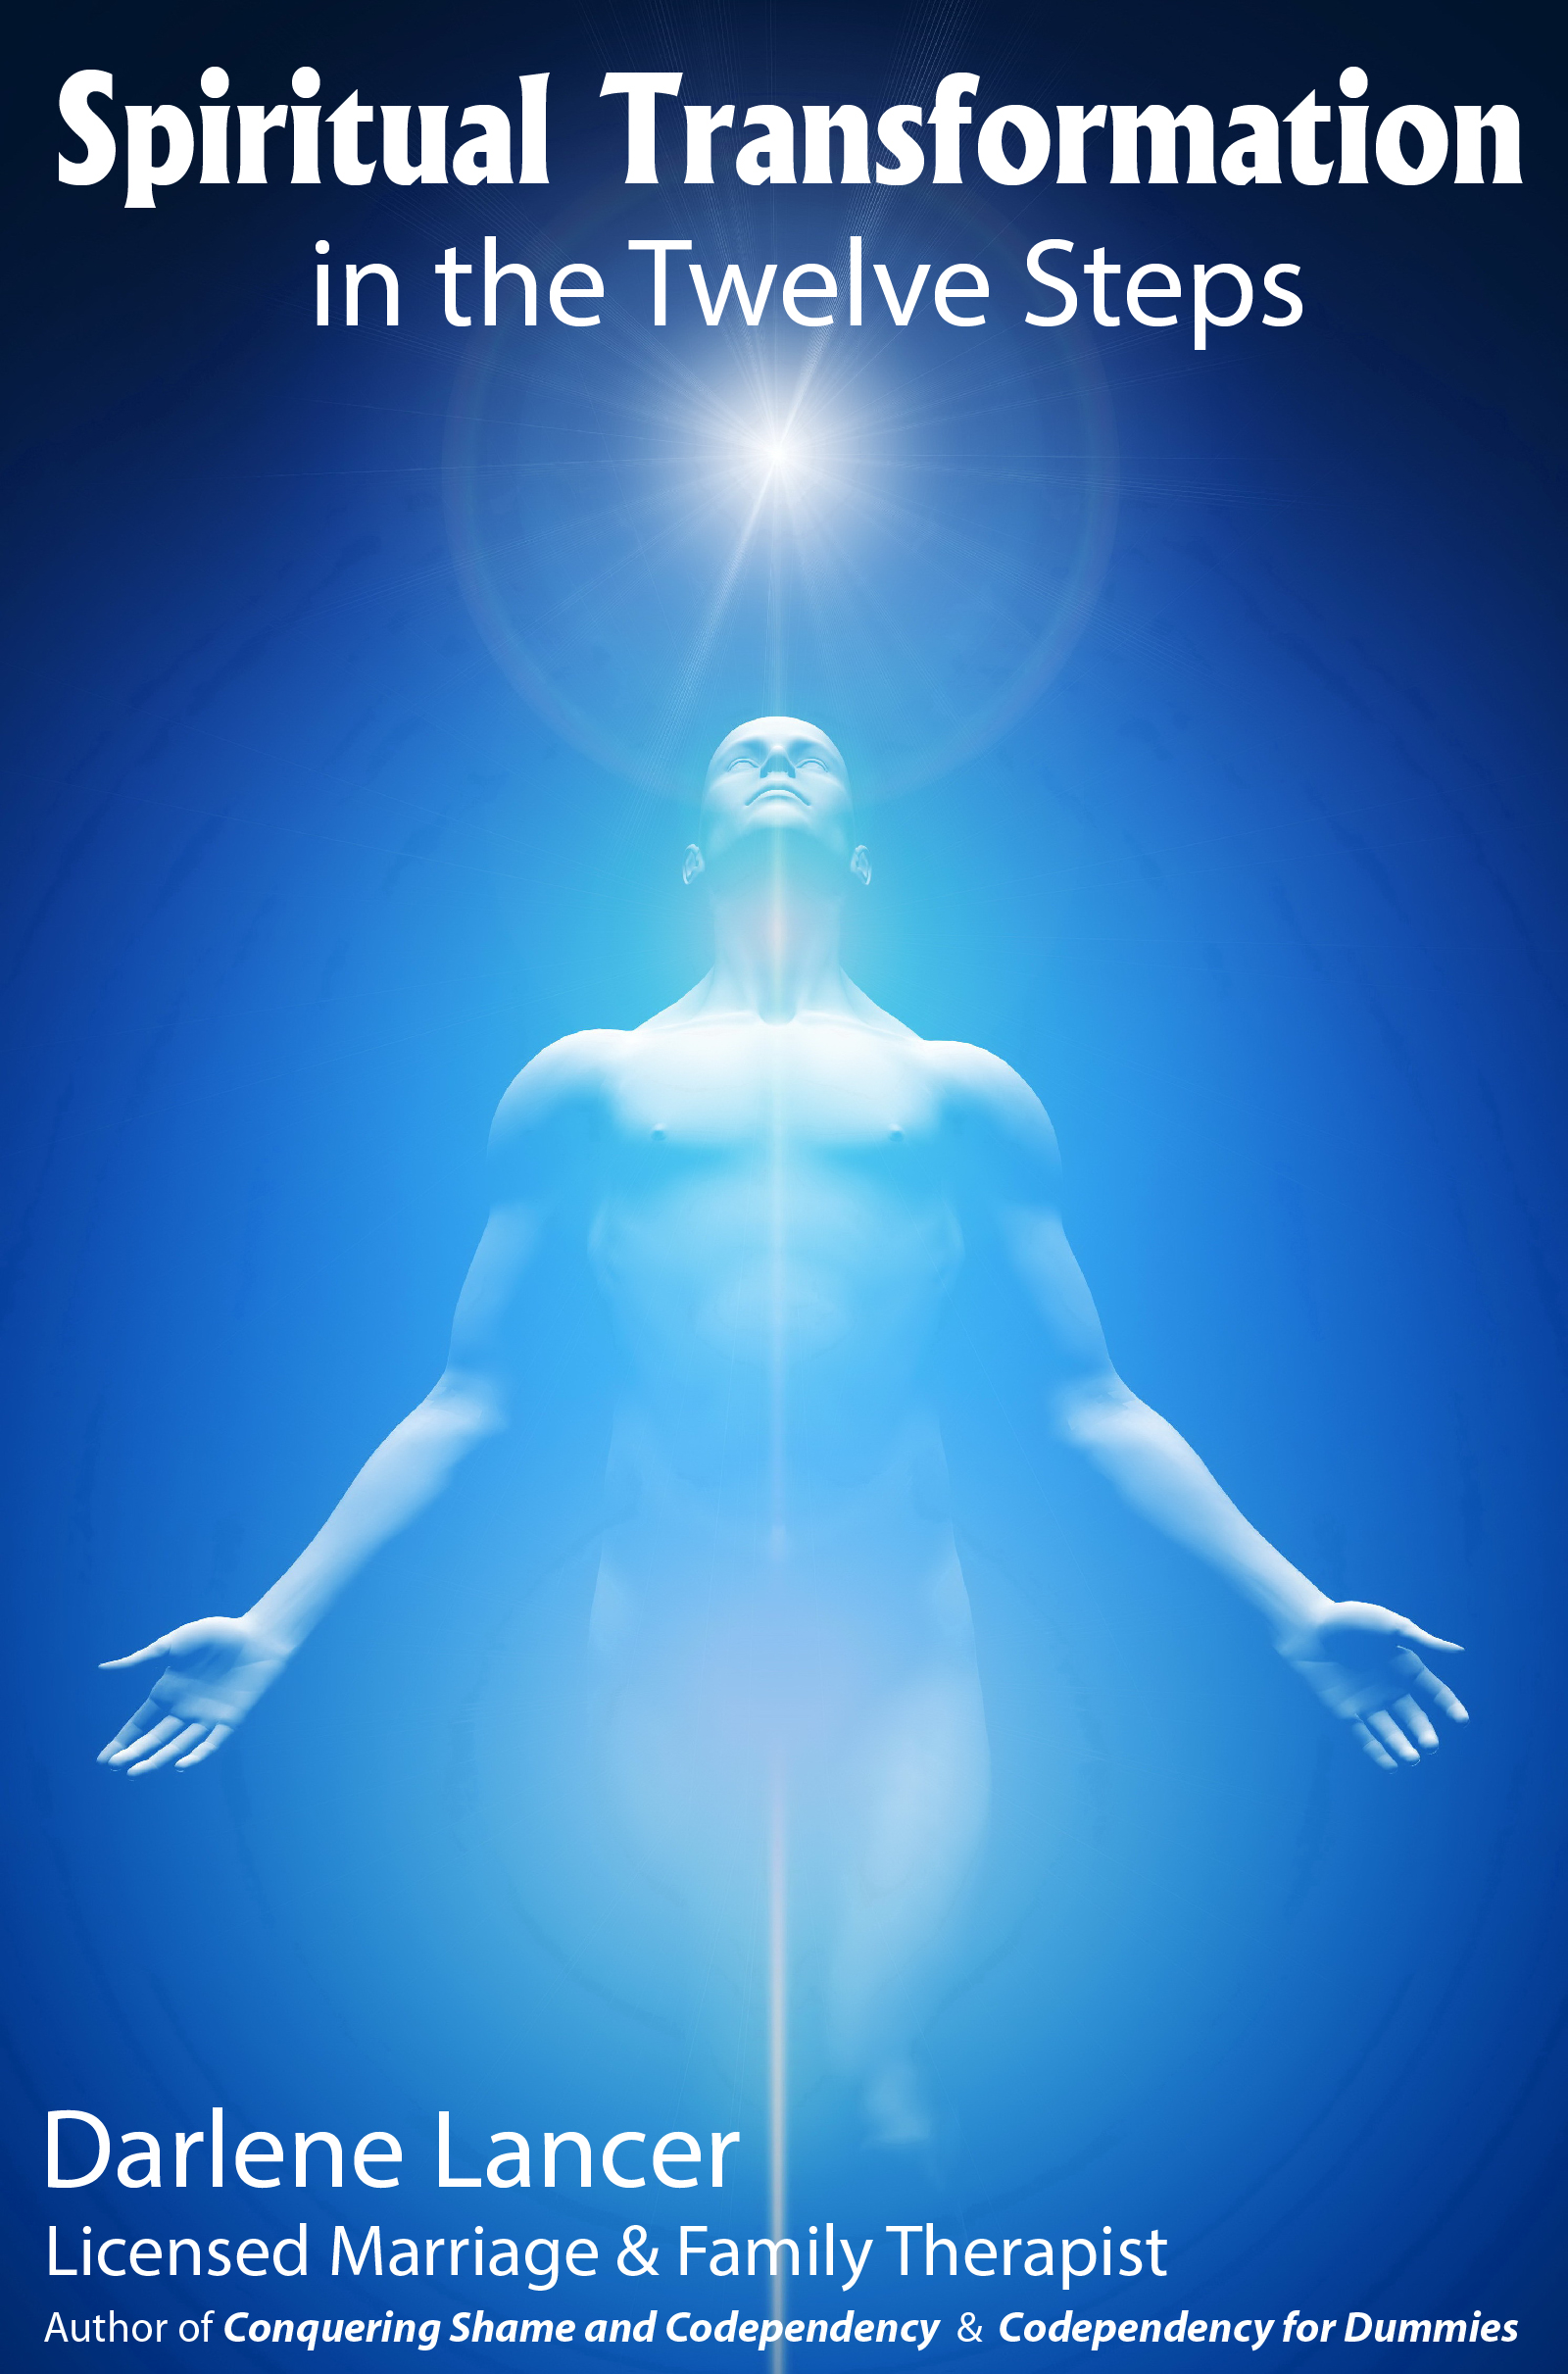 human spirit 1 the belief that the spirits of the dead communicate with the living, esp through a person (a medium) particularly susceptible to their influence.